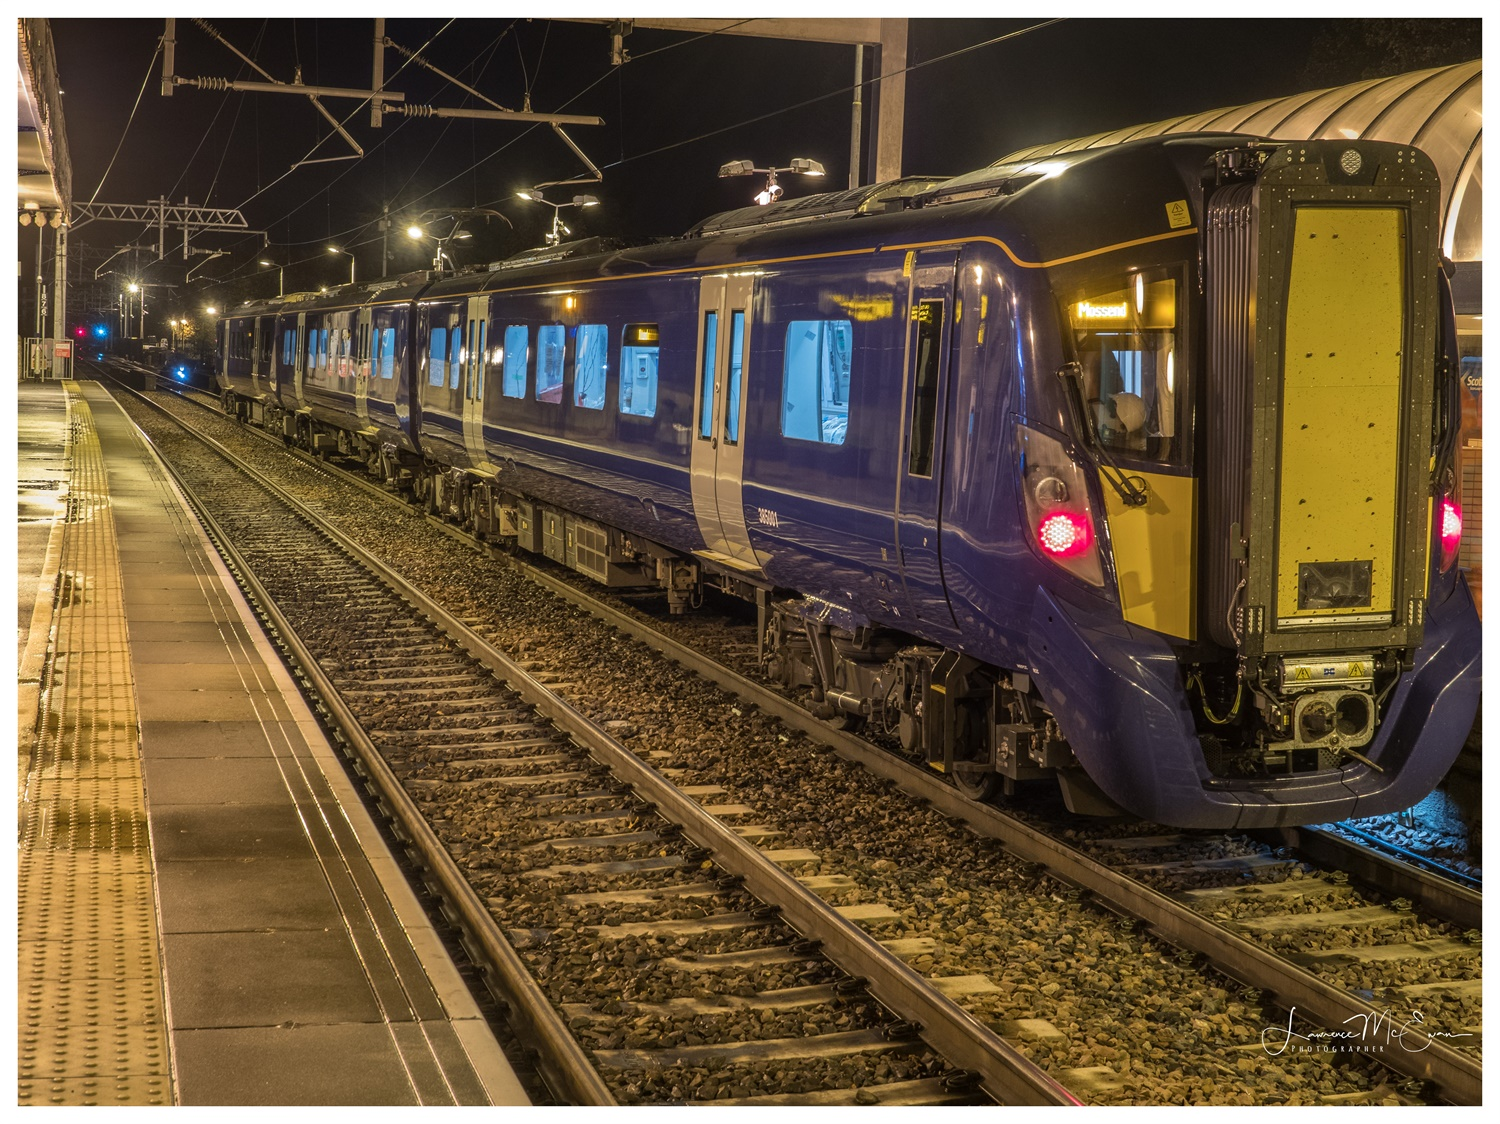 Major milestone as first Class 385 makes Edinburgh-Linlithgow trip